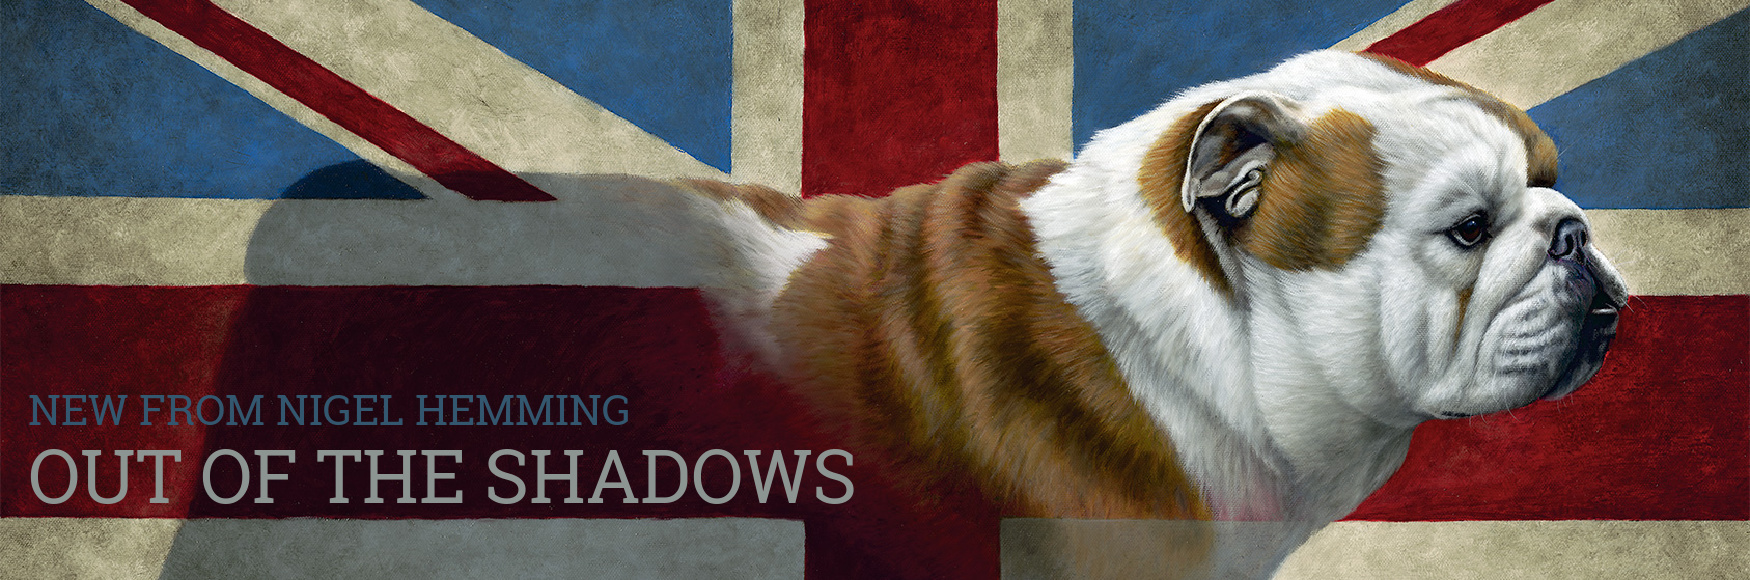 Out Of The Shadows by Nigel Hemming